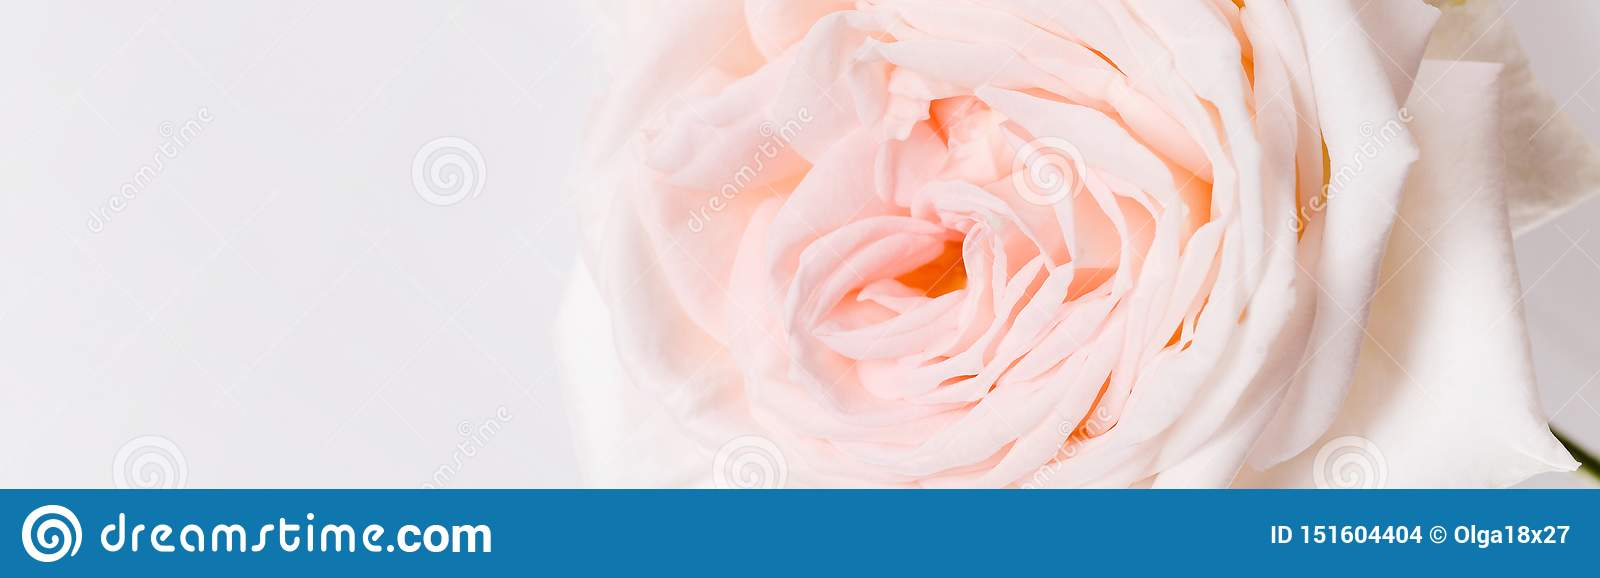 Romantic banner, delicate white pink rose flowers close-up. Fragrant pink petals